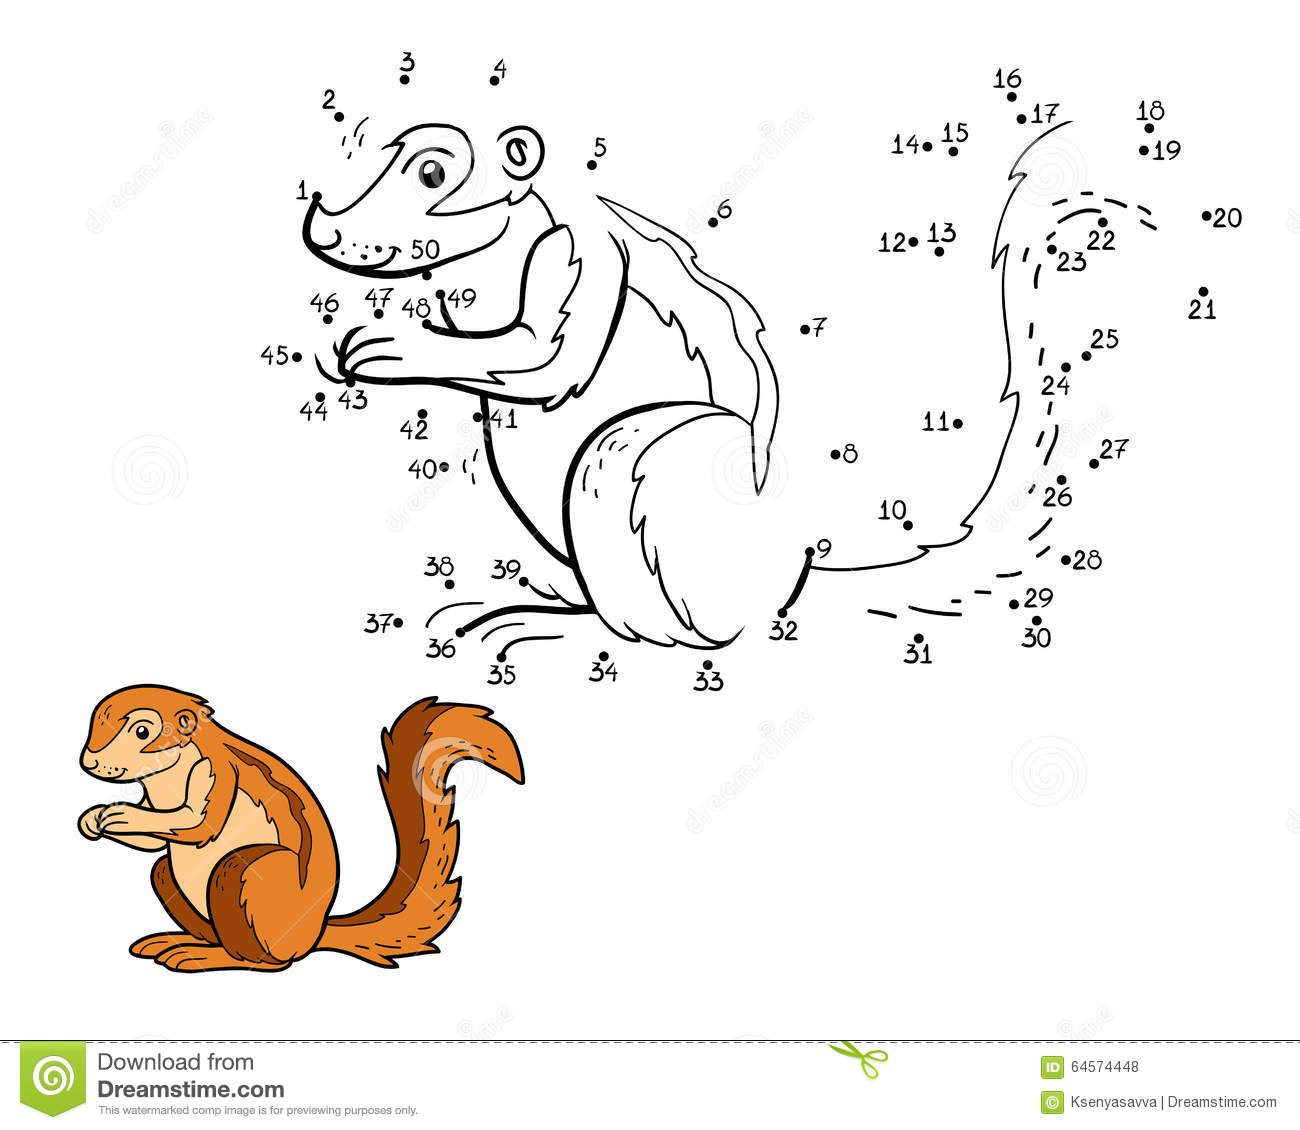 xerus squirrel coloring pages - photo #13